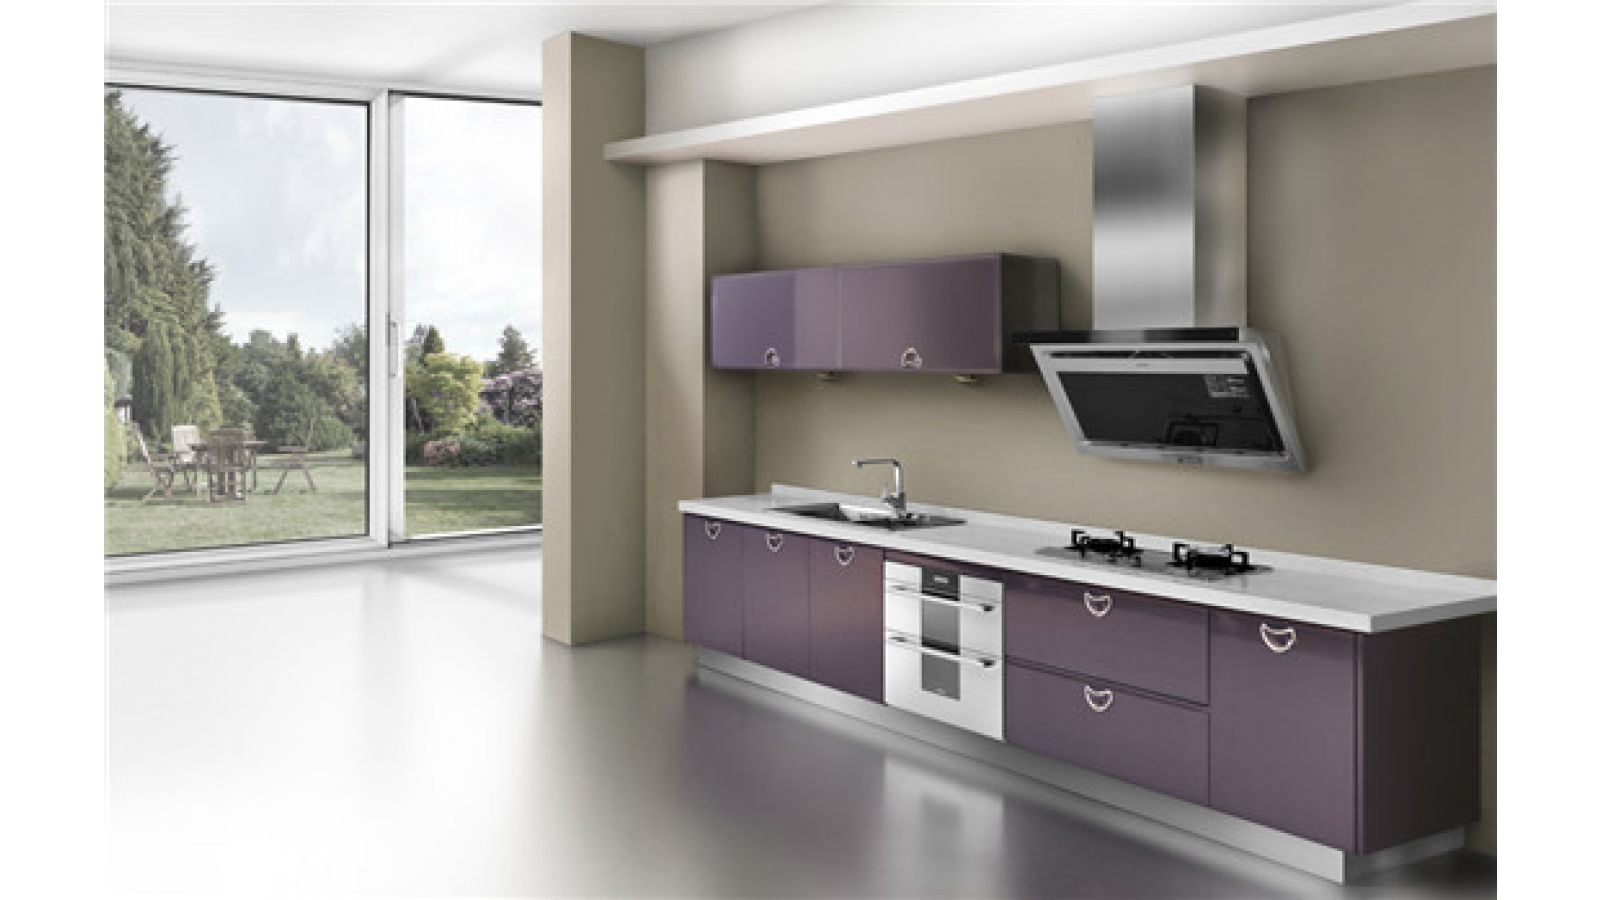 Commercial Stainless Steel Kitchen Cabinets